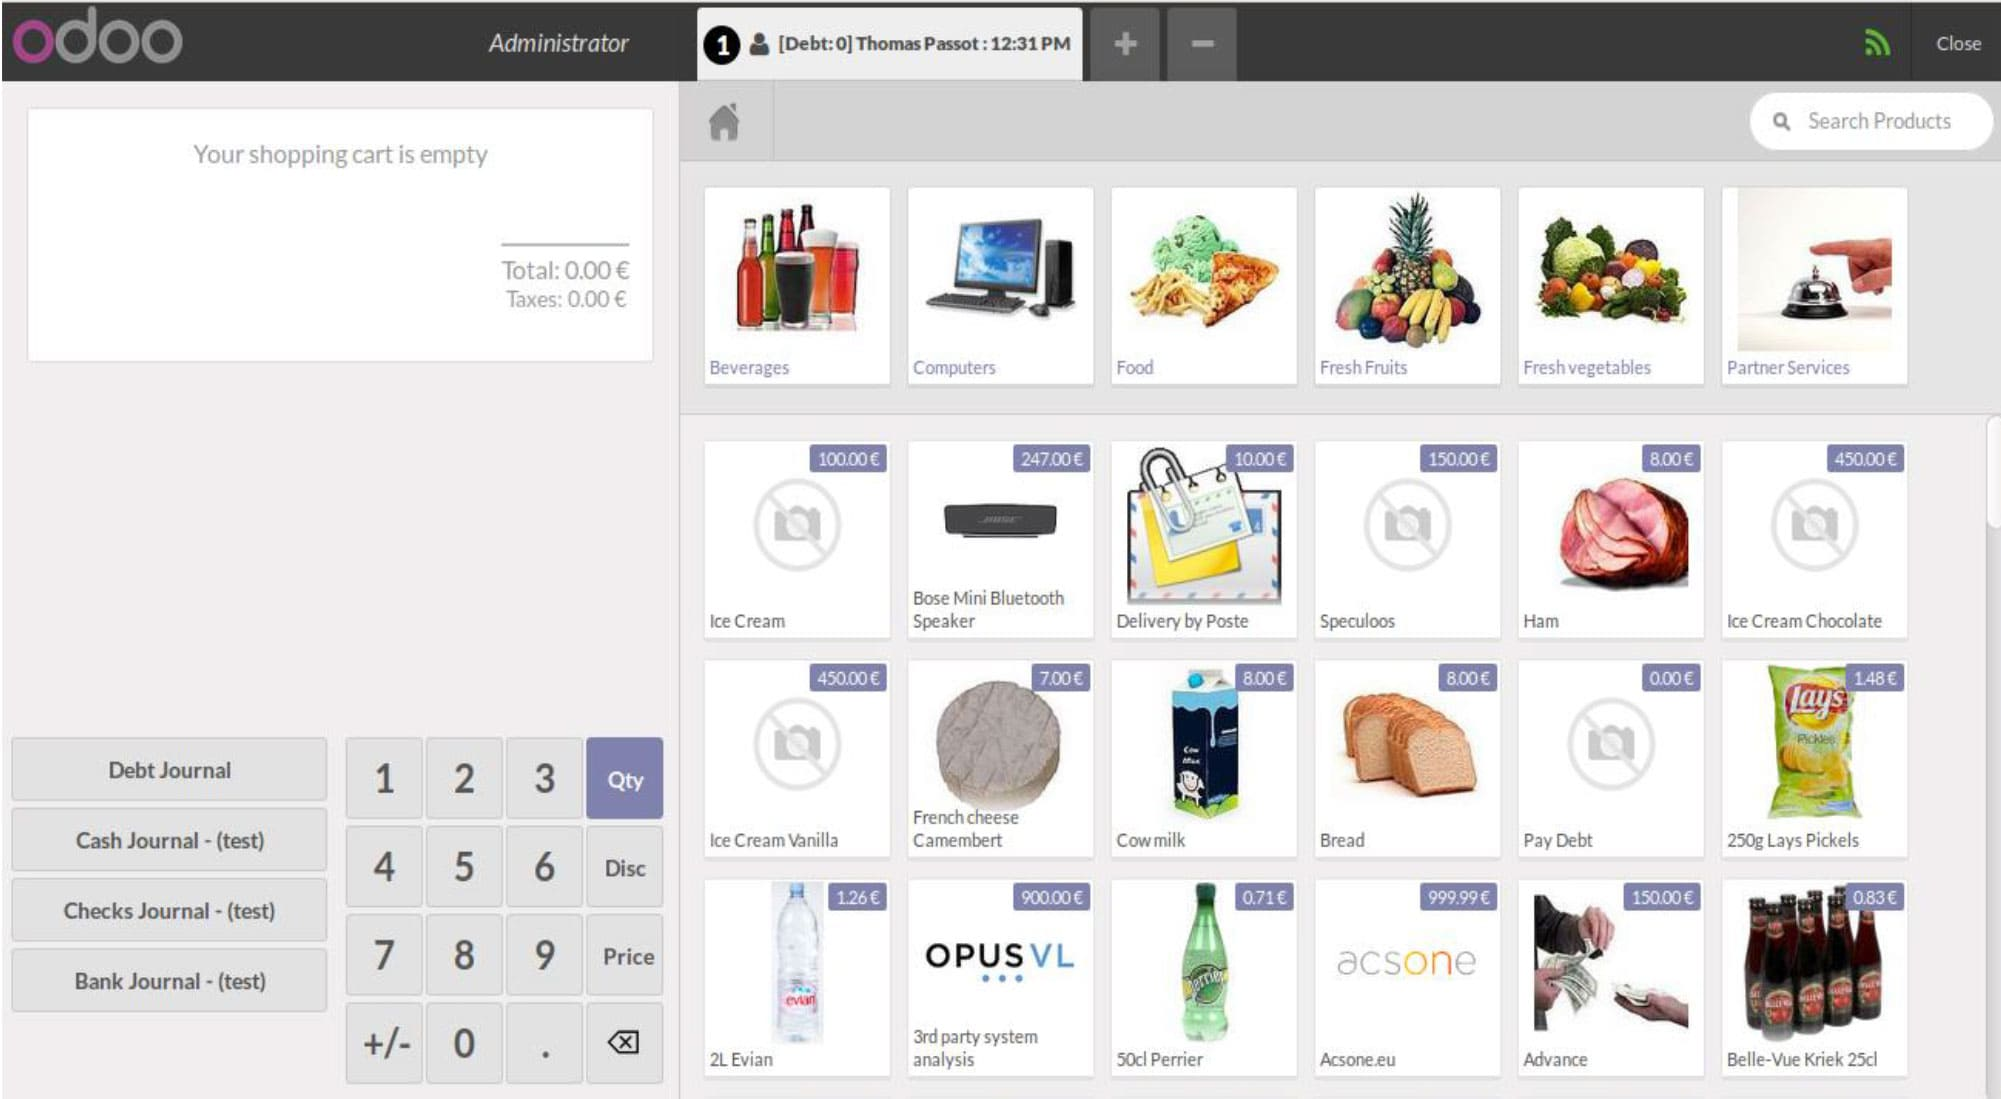 https/blog/Uploads/BlogImage/debt-notebook-11.jpg